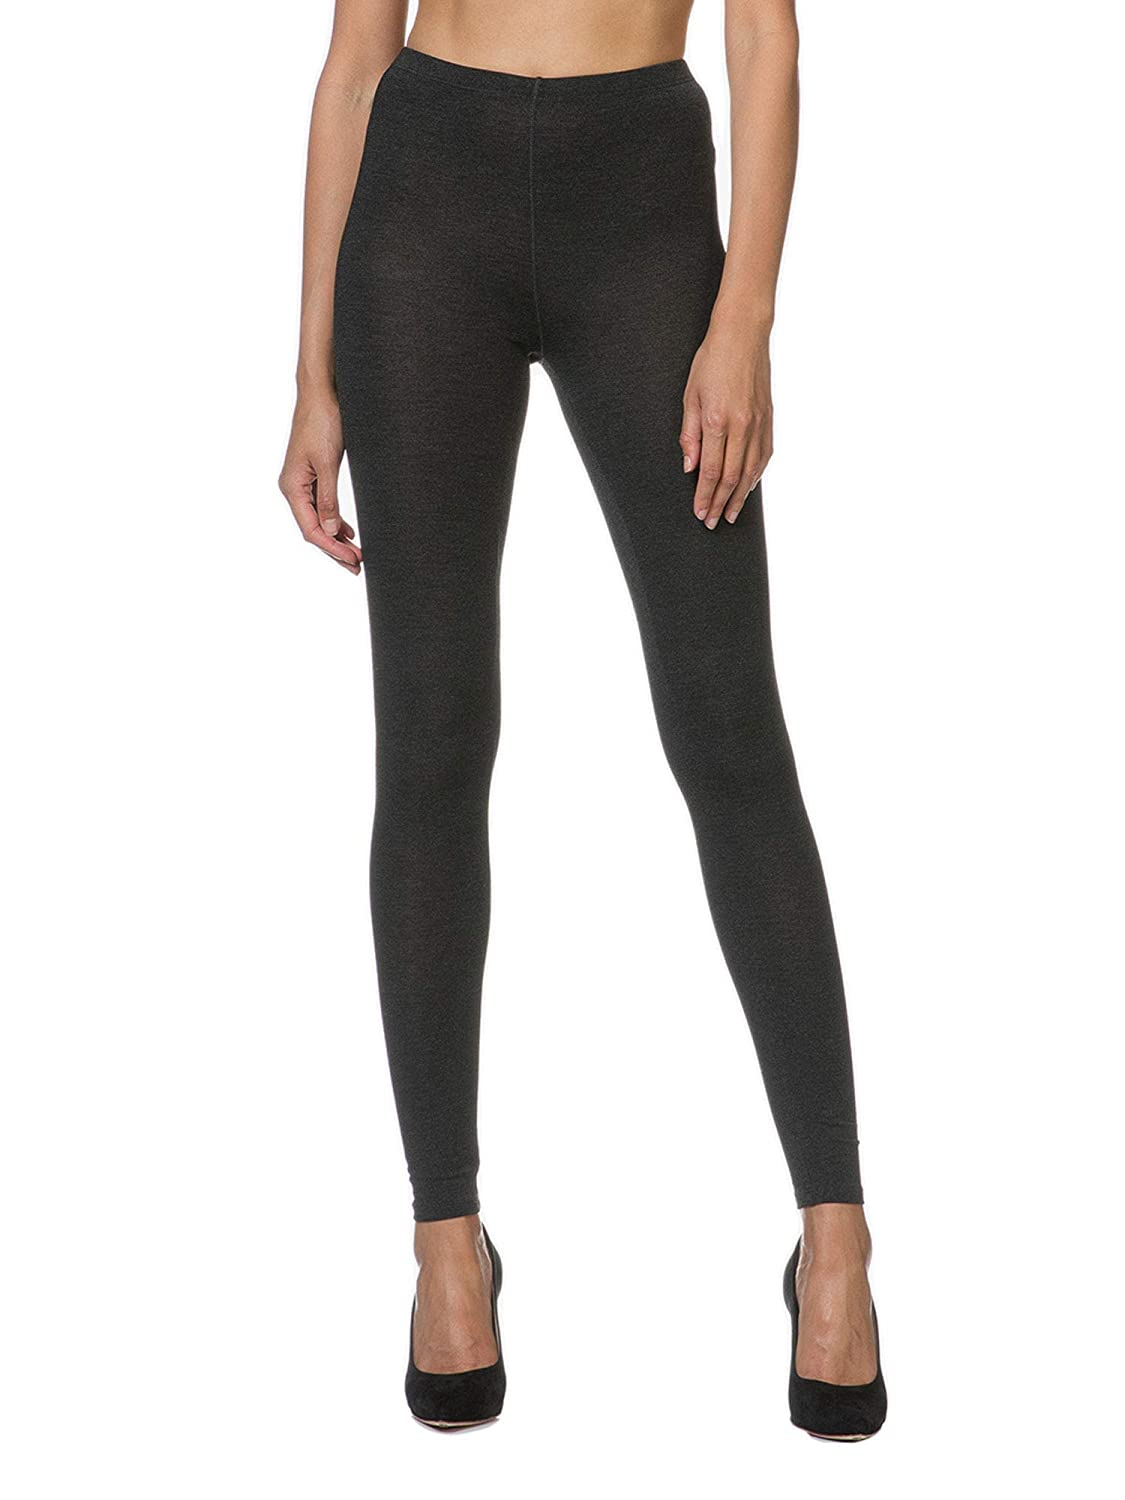 Majestic Filatures Paris Women's Soft Touch Jersey Leggings H13009